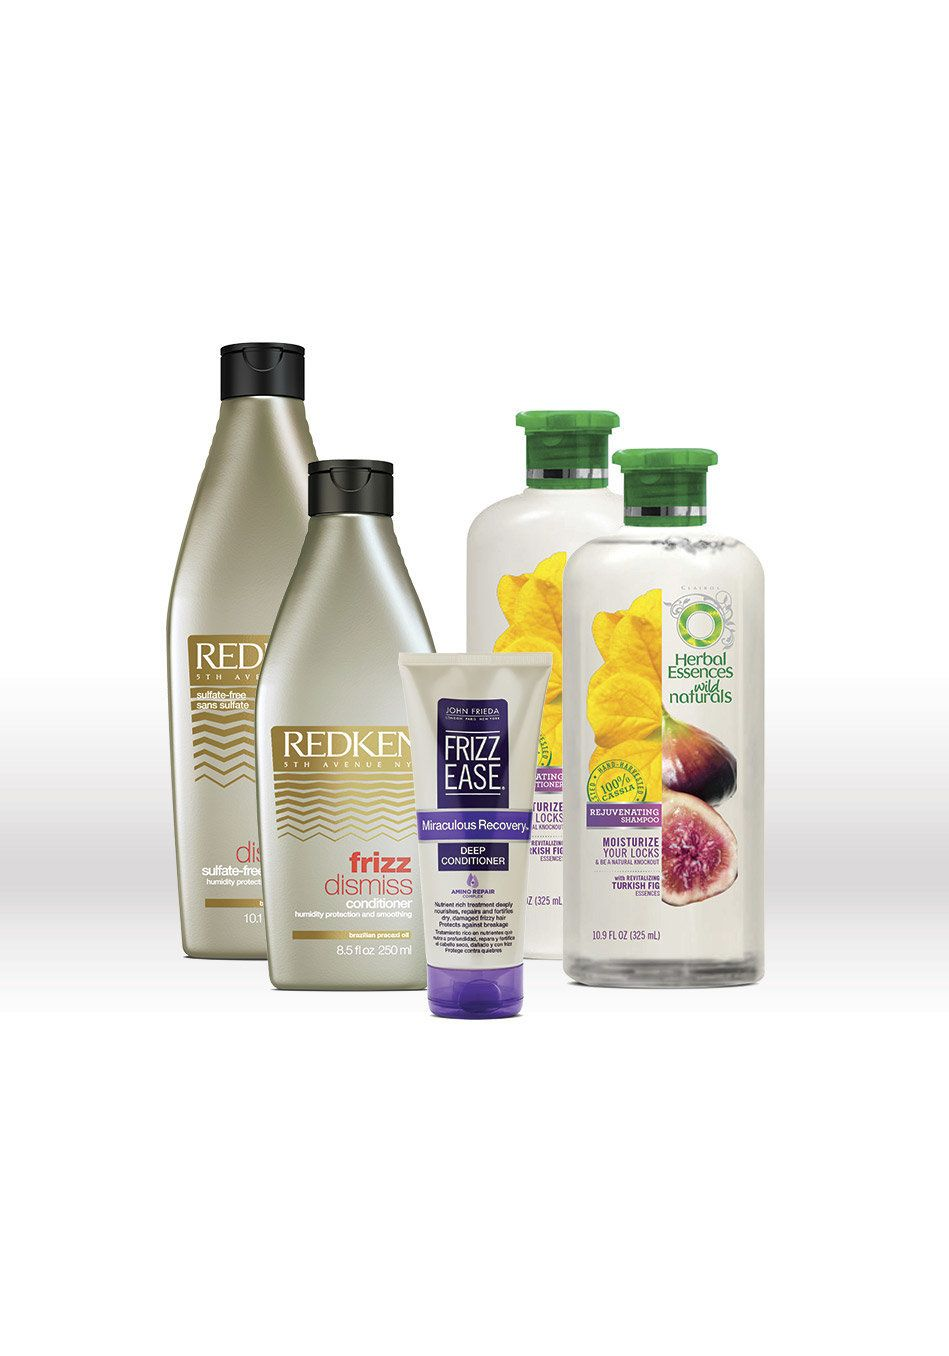 <b>Mane Problems</b> <br> Frizz, dryness <br><br> <b>You Need...</b> <br> Hydrating shampoo and conditioner. On the ingredien